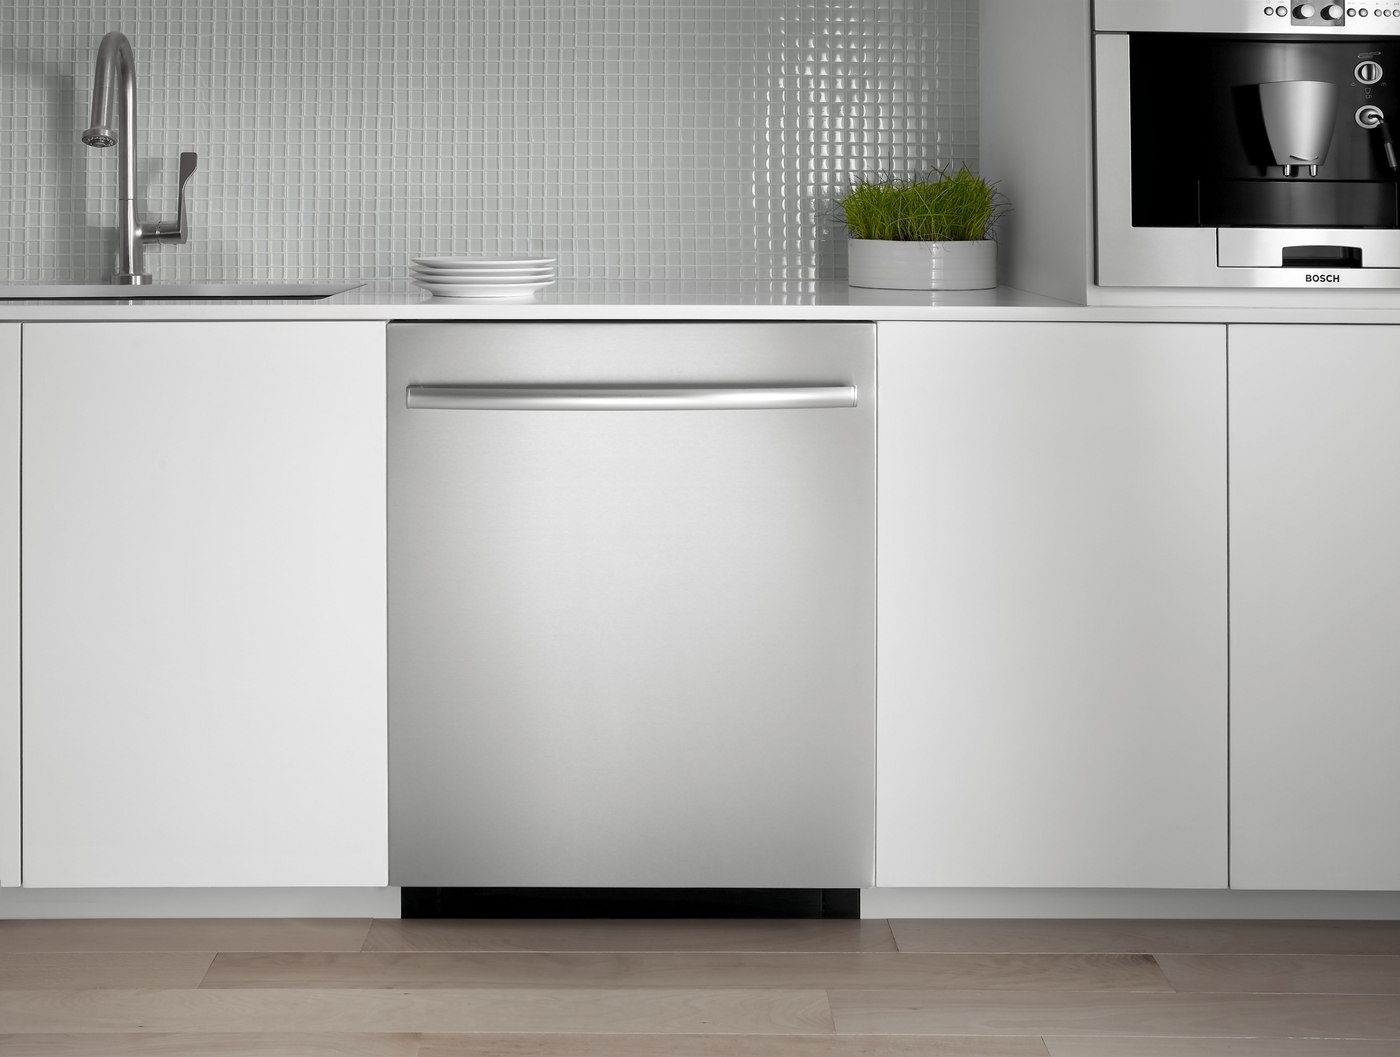 american style vs european style dishwashers reviews ratings. Black Bedroom Furniture Sets. Home Design Ideas